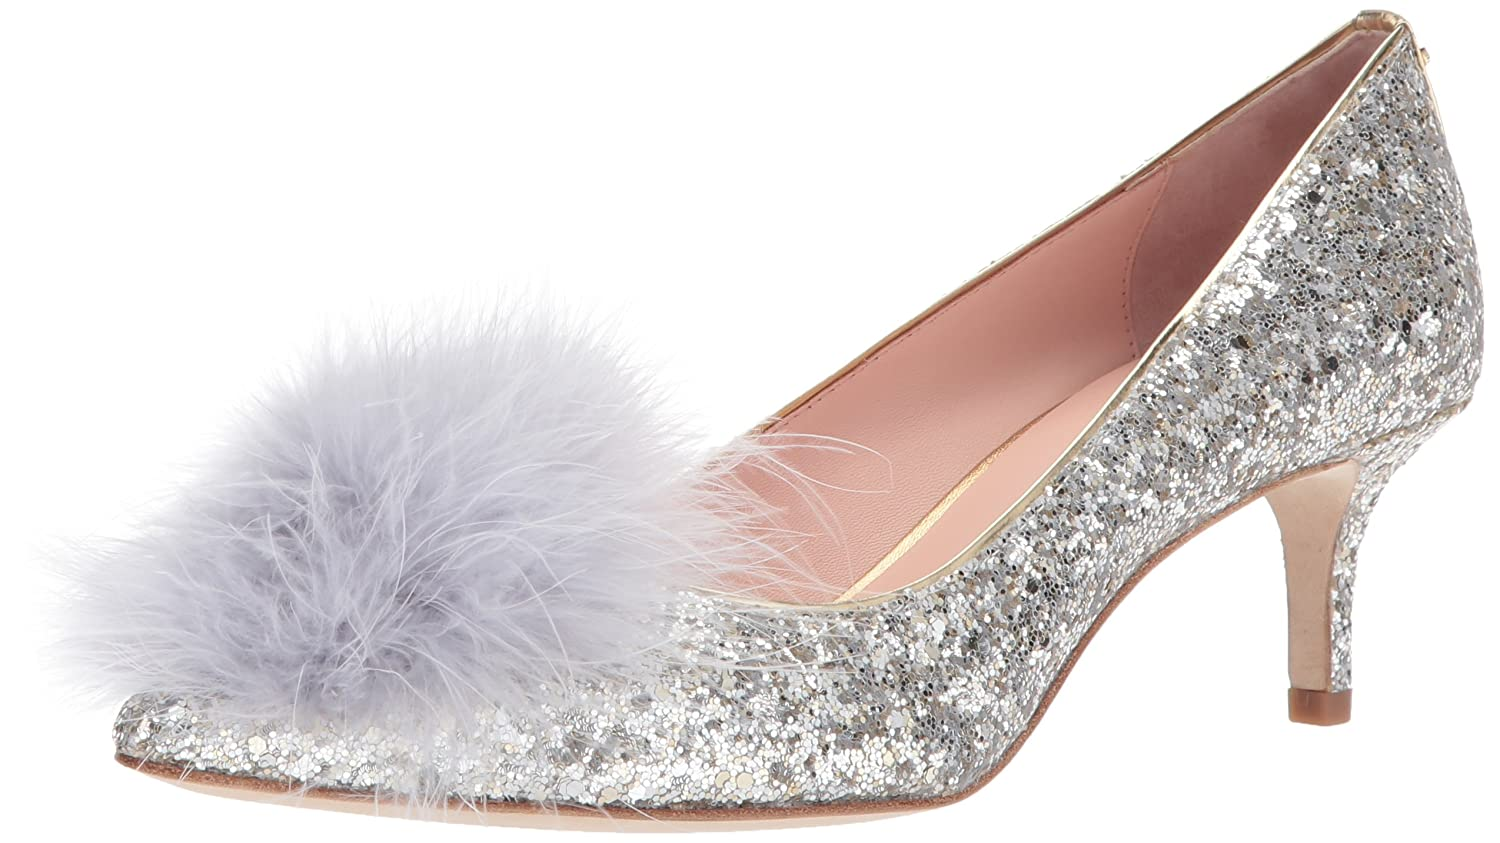 Kate Spade New York Women's Park Pump